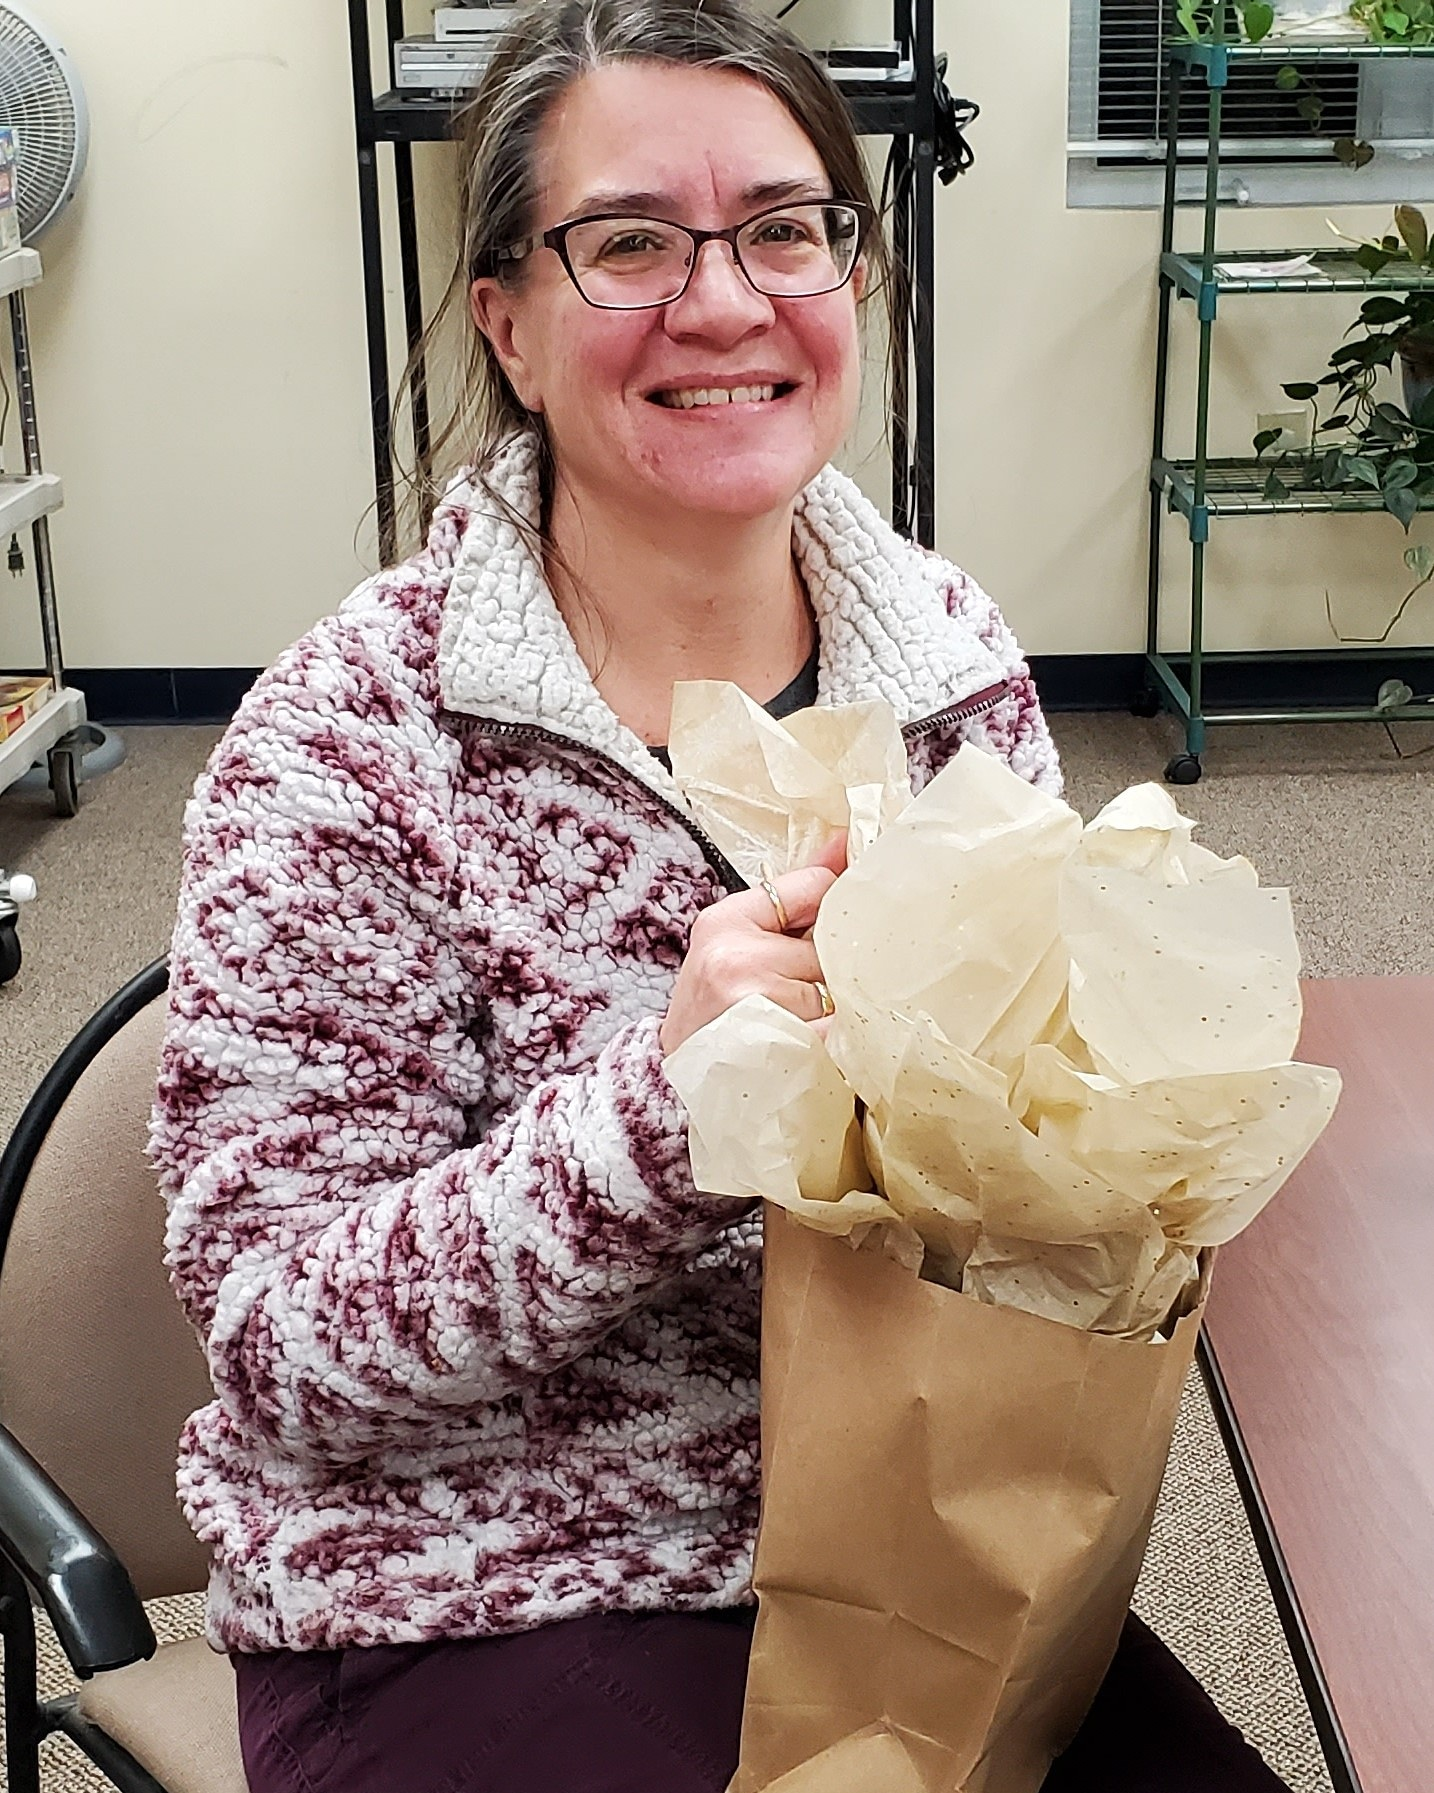 "Newest member Deanna won the prize drawing at January's ""Around Town' Book Club meeting. She won a soup mug, honey soaps, and a book bag."